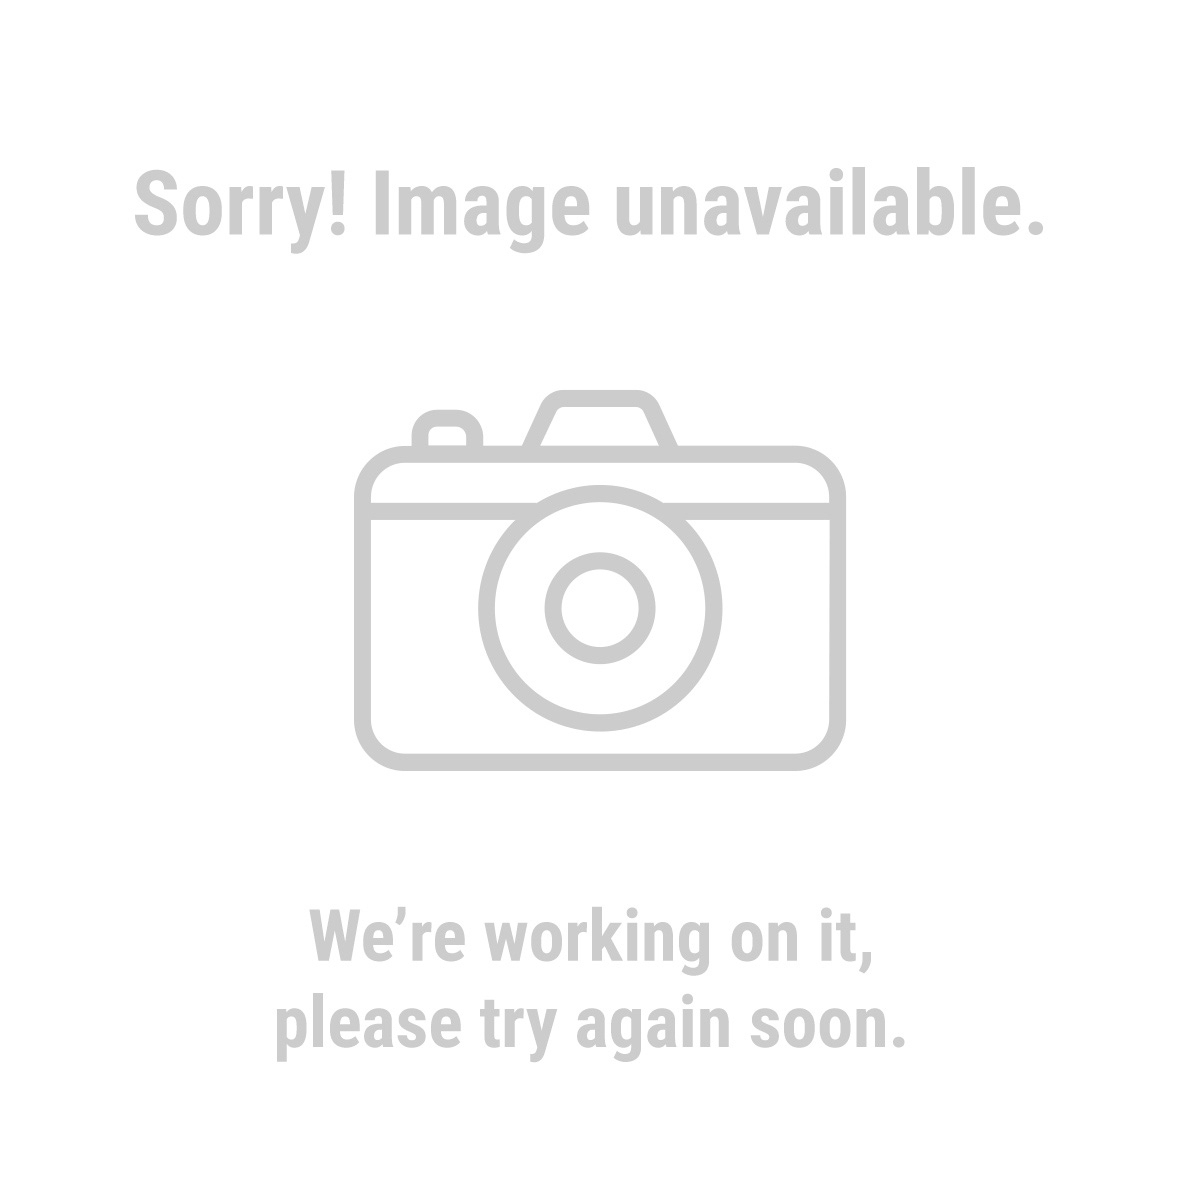 THUNDERBOLT MAGNUM SOLAR 68692 1.5 Watt Solar Battery Charger